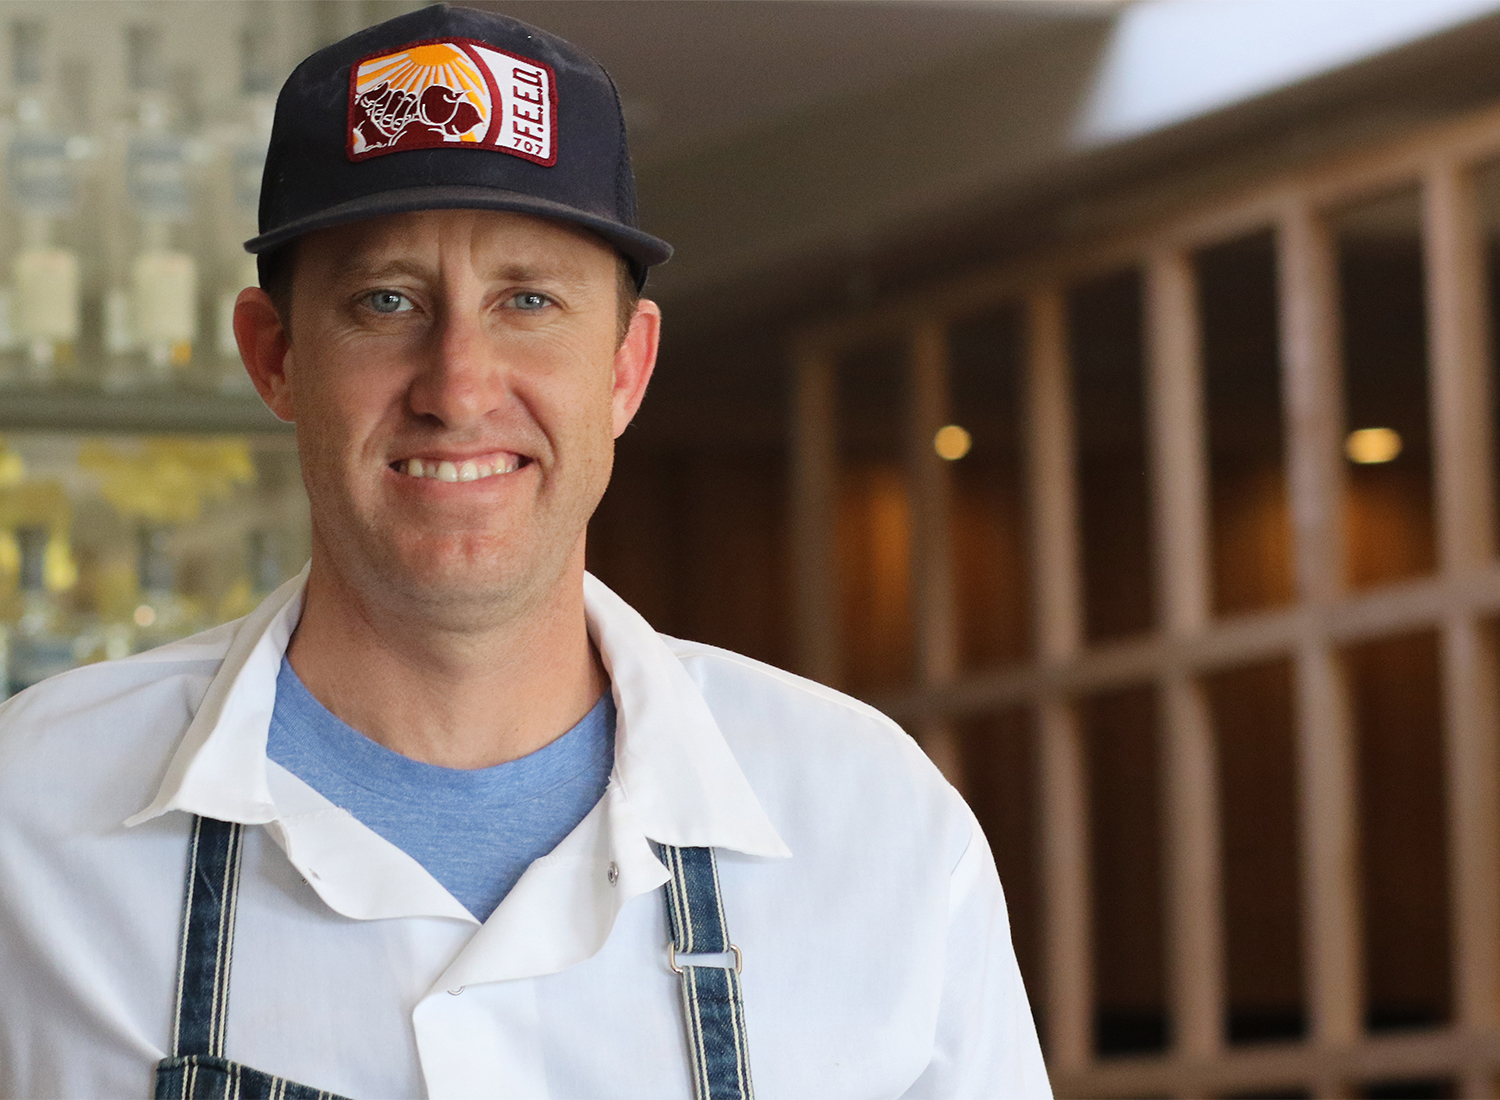 Chef Mike Mullins at Perch and Plow restaurant in Santa Rosa.